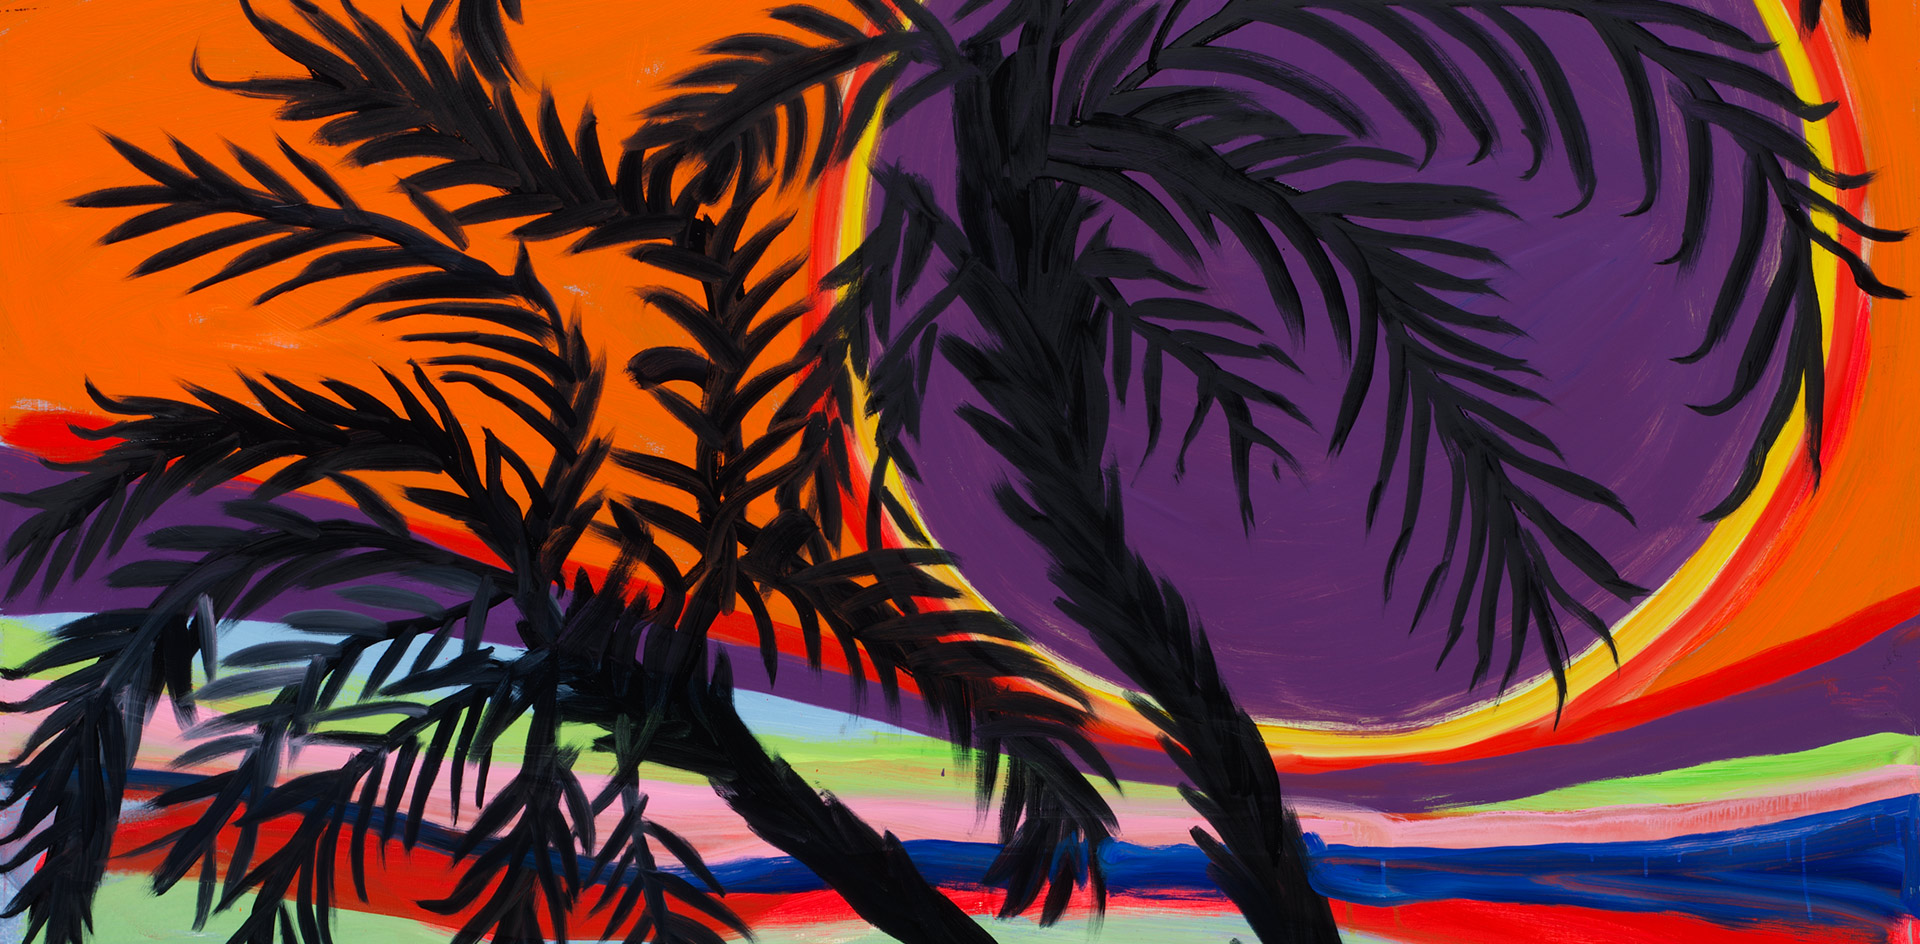 A detail from a painting by Josh Smith, titled Karma Palms #4, dated 2019.